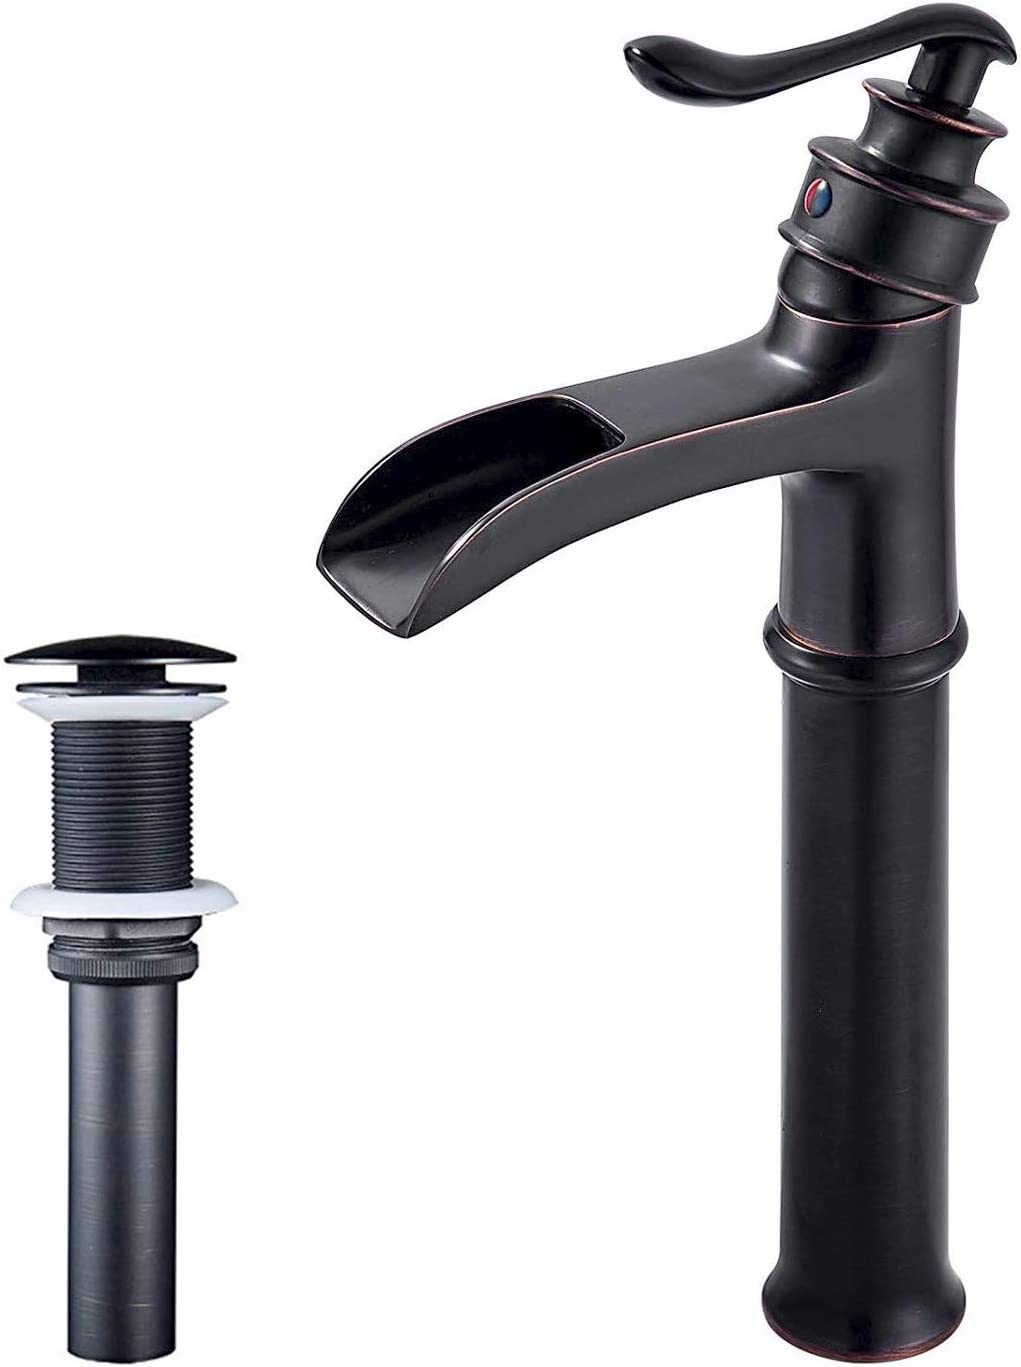 NeierThodore Oil Rubbed Bronze Lavatory Vessel Basin Tall Faucet One Handle Waterfall Spout with Pop Up Drain,Deck Mounted Mixer Tap